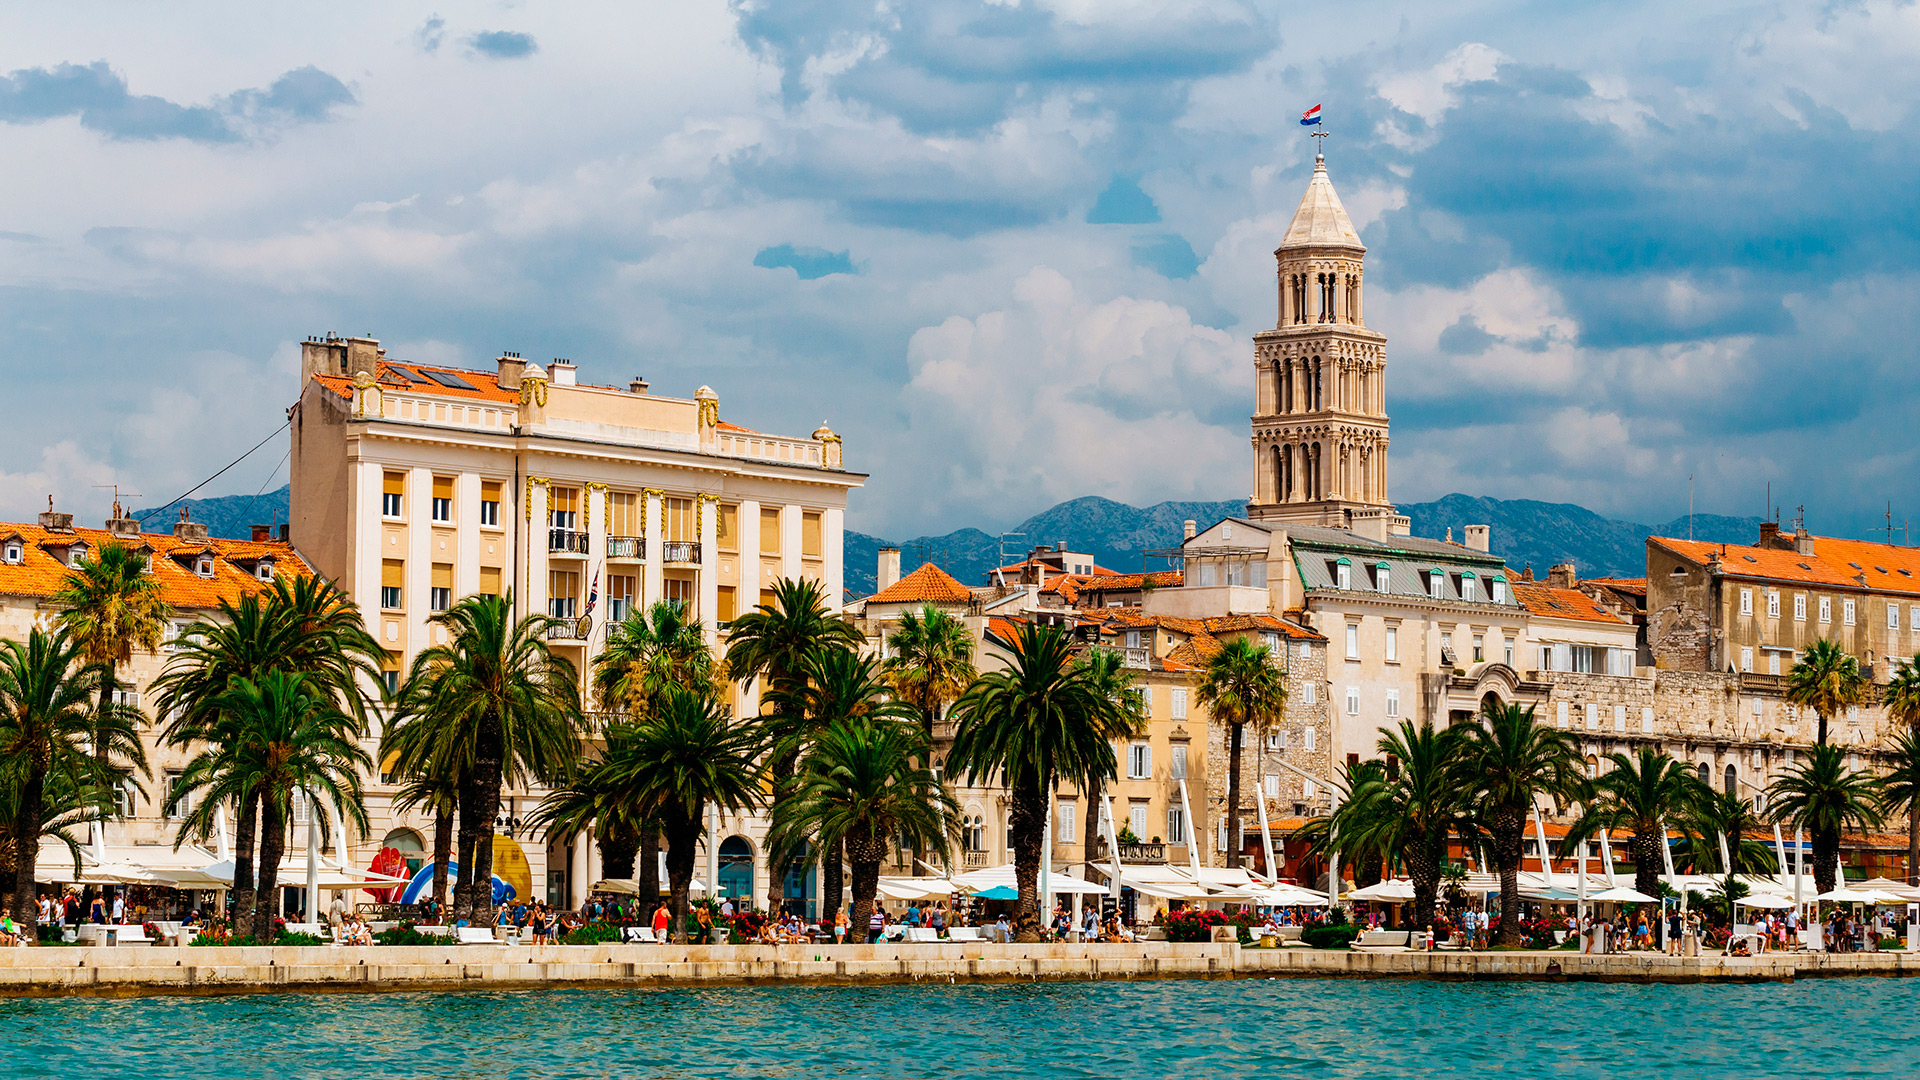 City promenade, Split, CroatiaSplit, Croatia - Croatian waters SimpleSail sailing routes